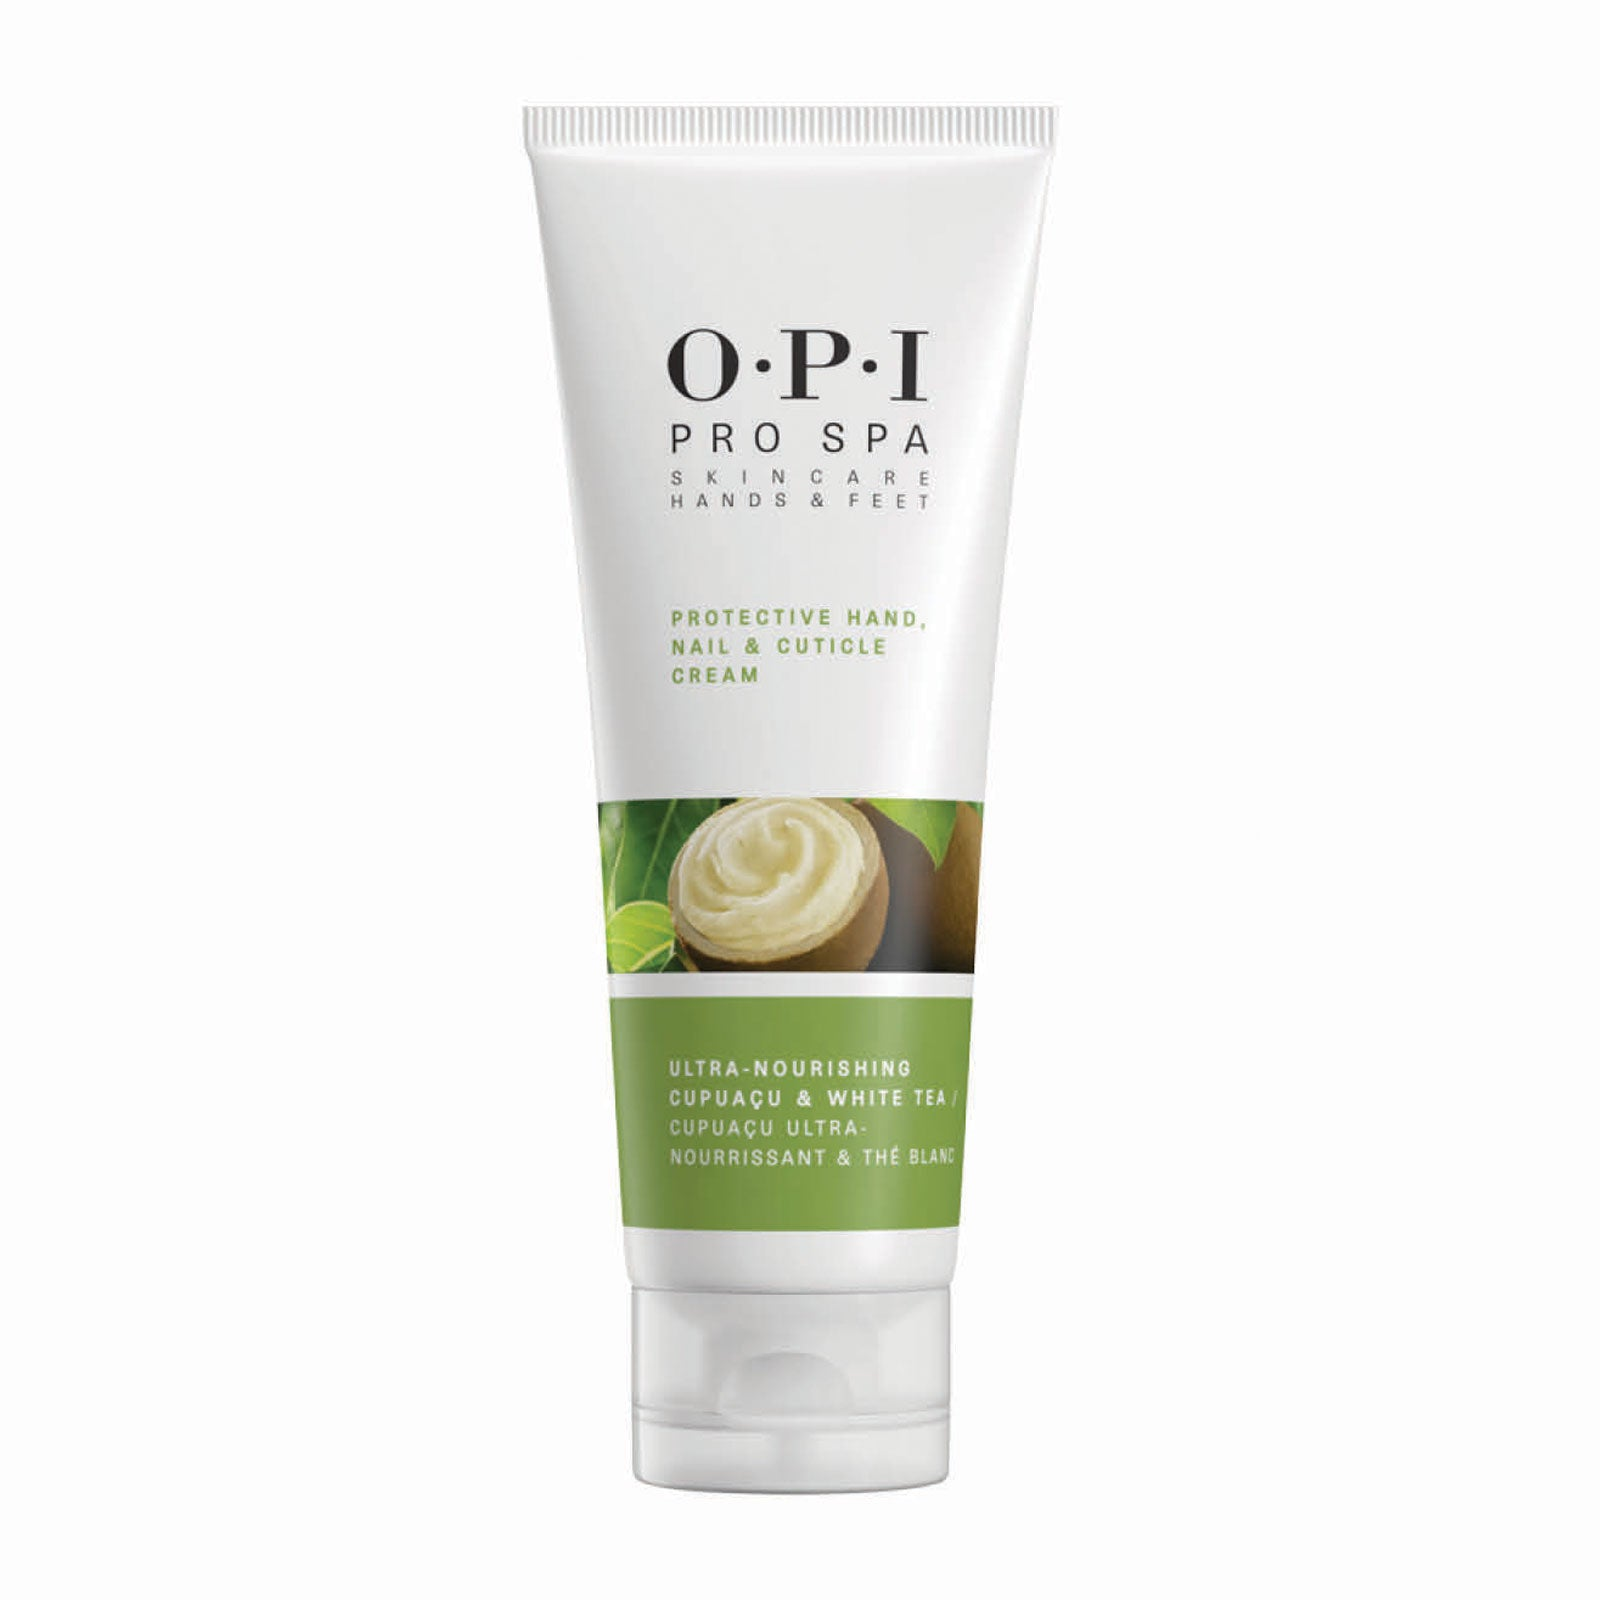 OPI ProSpa Protective Hand, Nail & Cuticle Cream 118ml